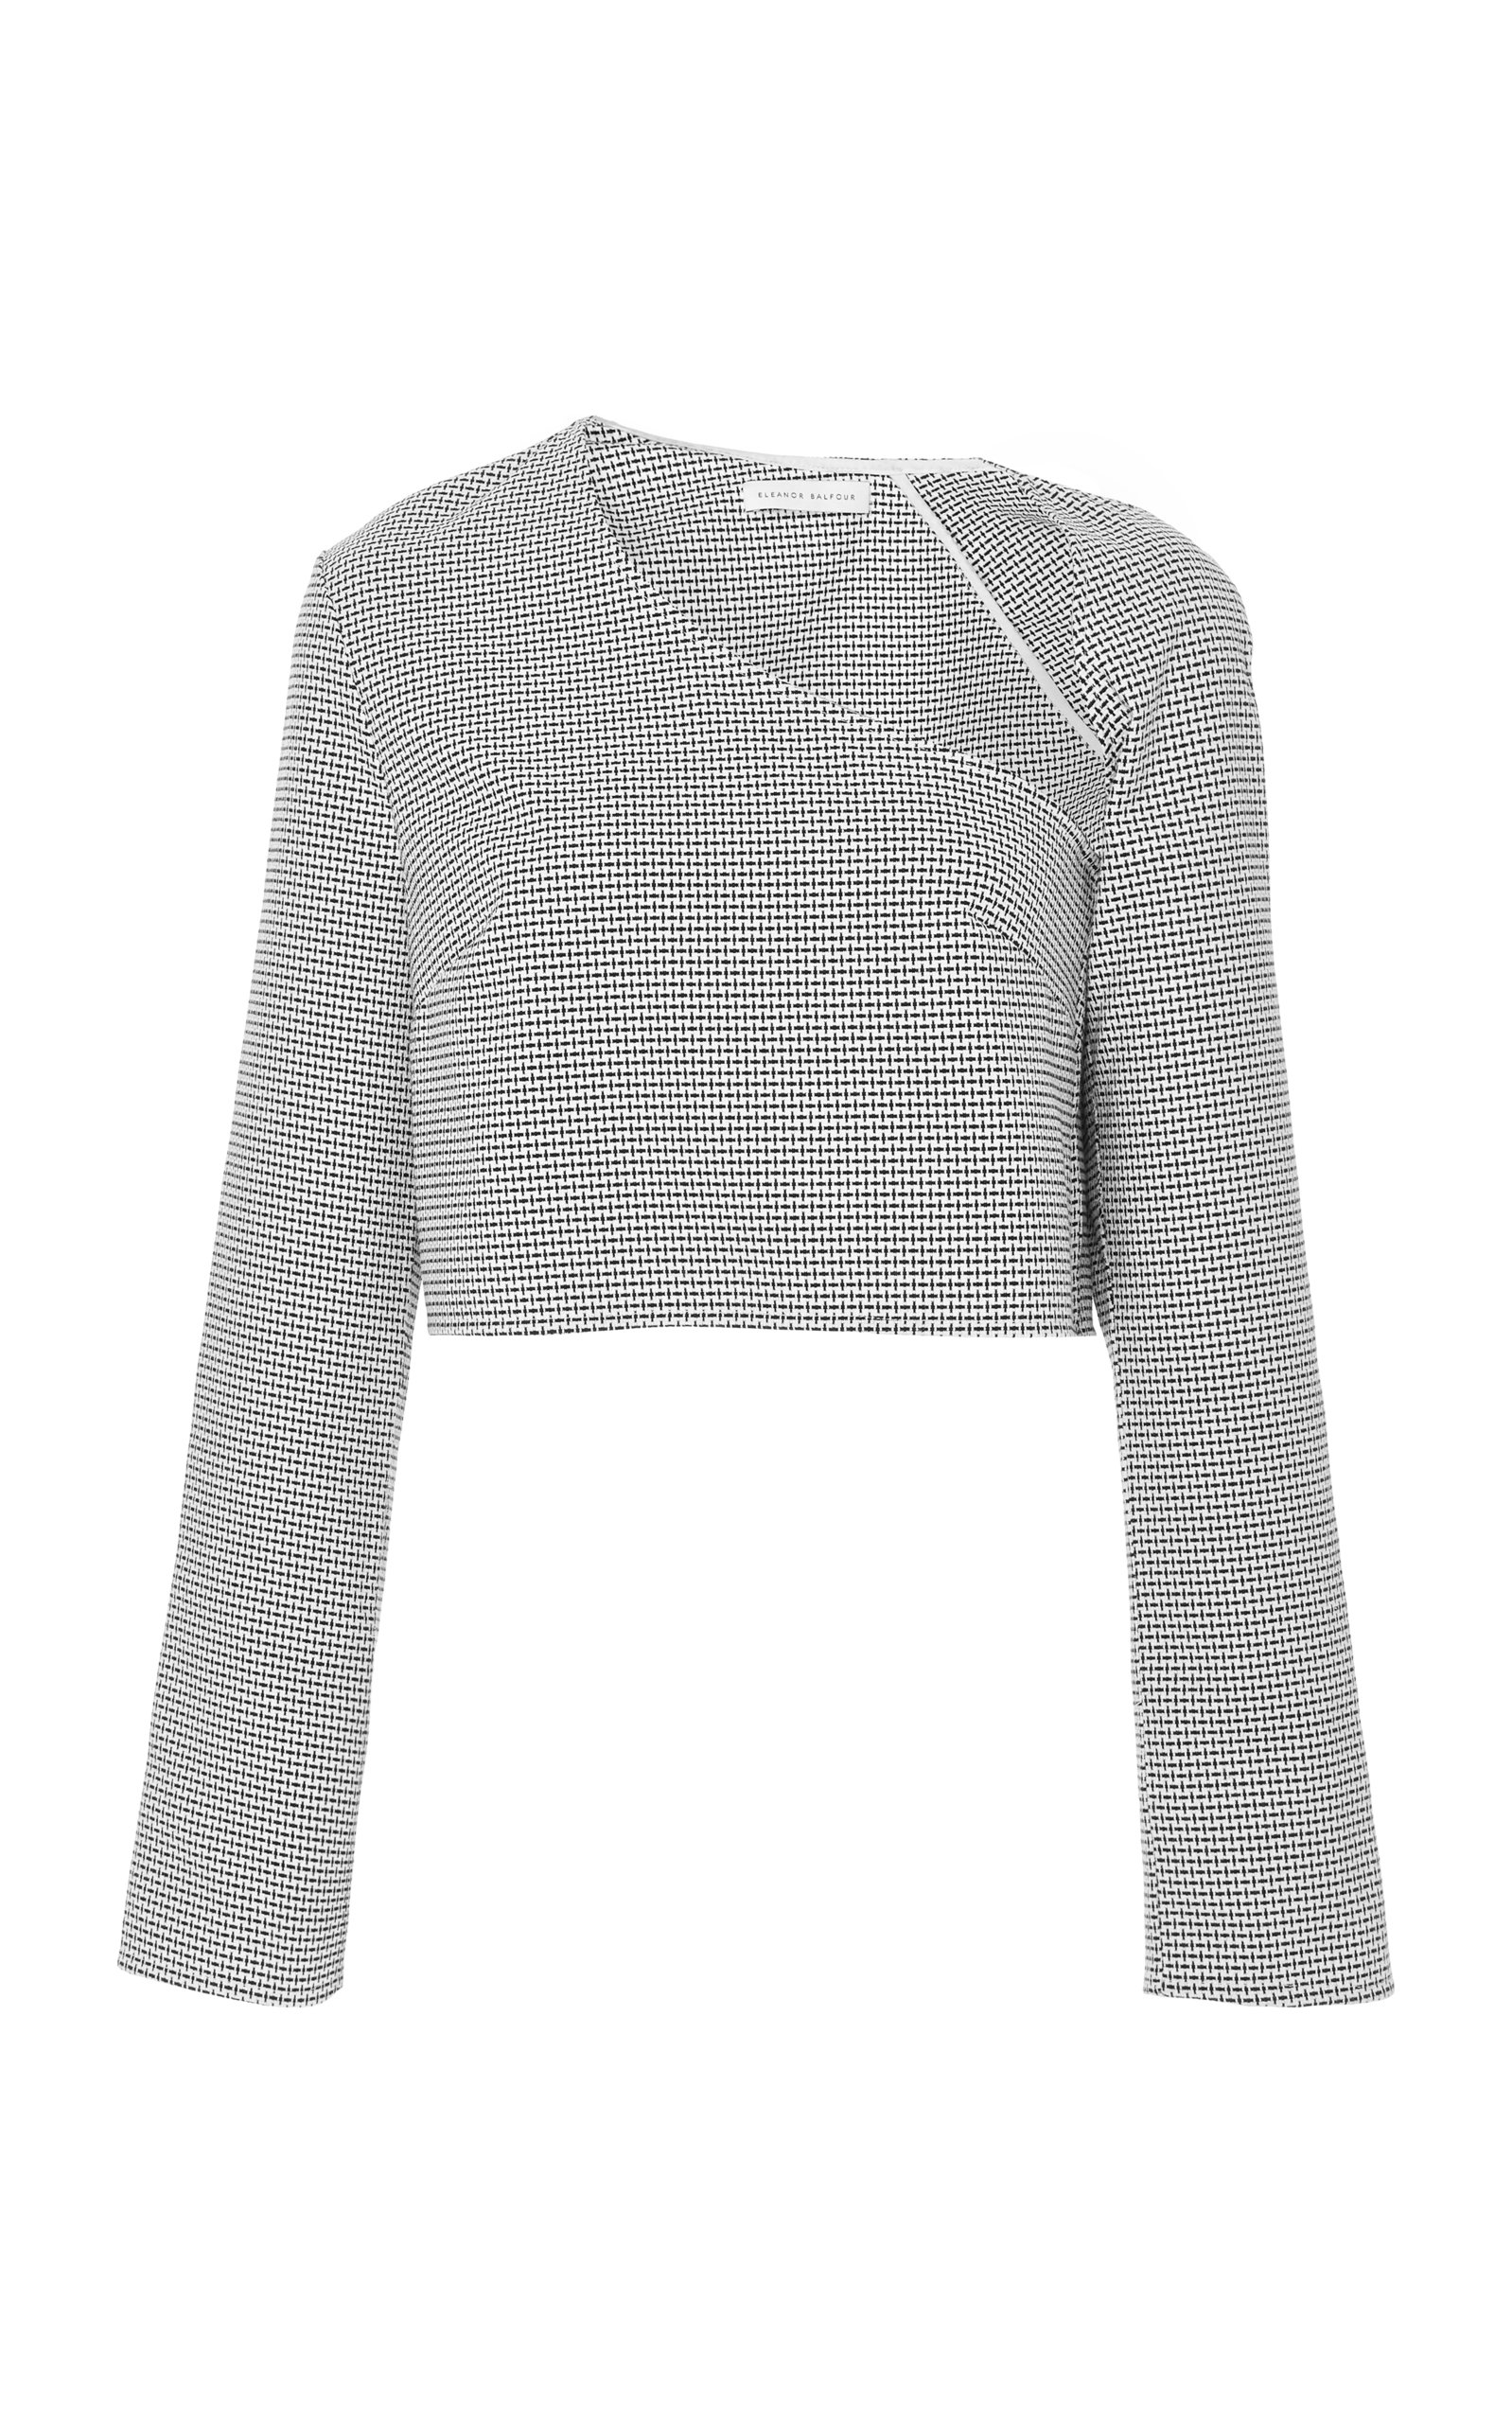 ELEANOR BALFOUR CHARLIE TWISTED TOP